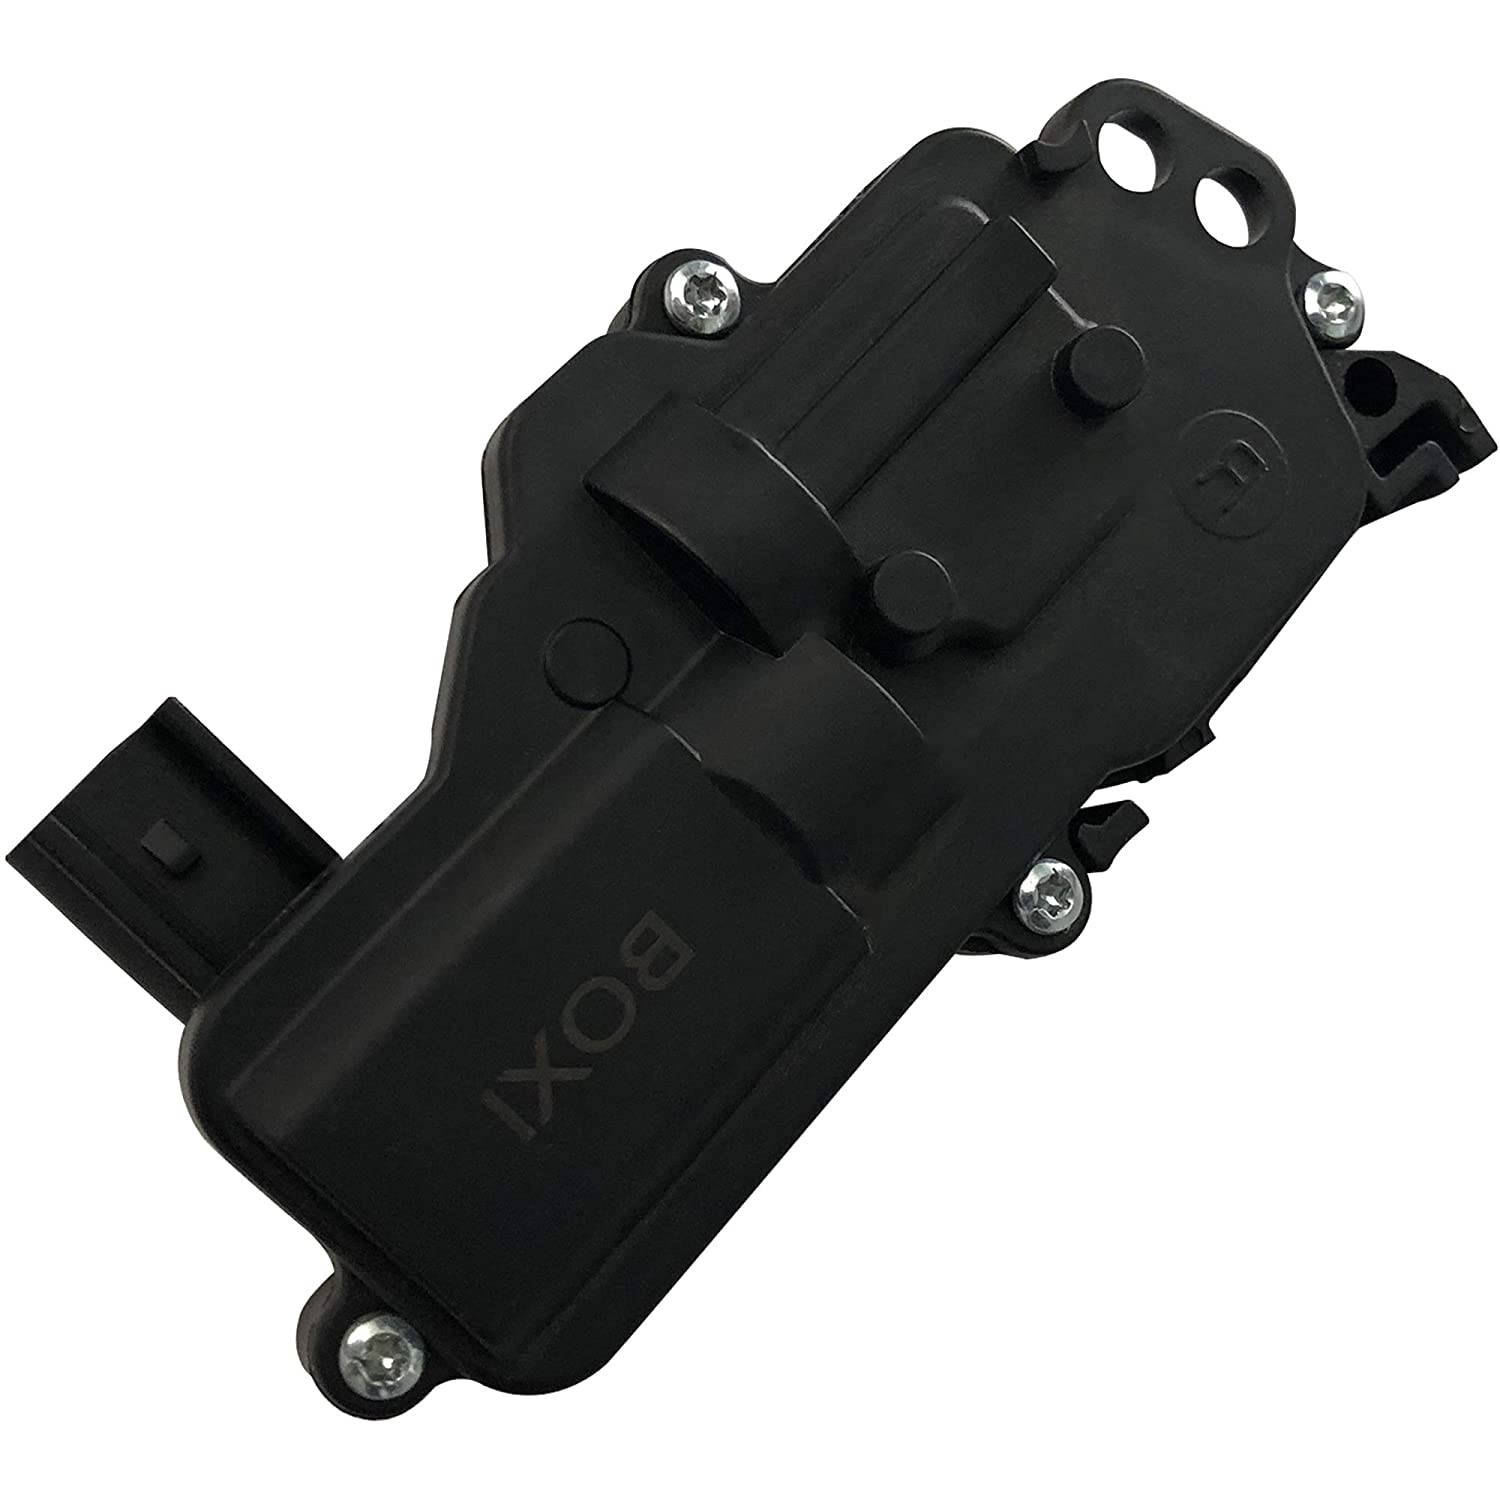 BOXI Front//Rear Left Driver Side Door Latch /& Lock Actuator For Ford Explorer F-150 Five Hundred Freestyle Lobo Mustang Taurus//Lincoln Aviator Mark LT//Mercury Montego Sable// 1L2Z78218A43AA